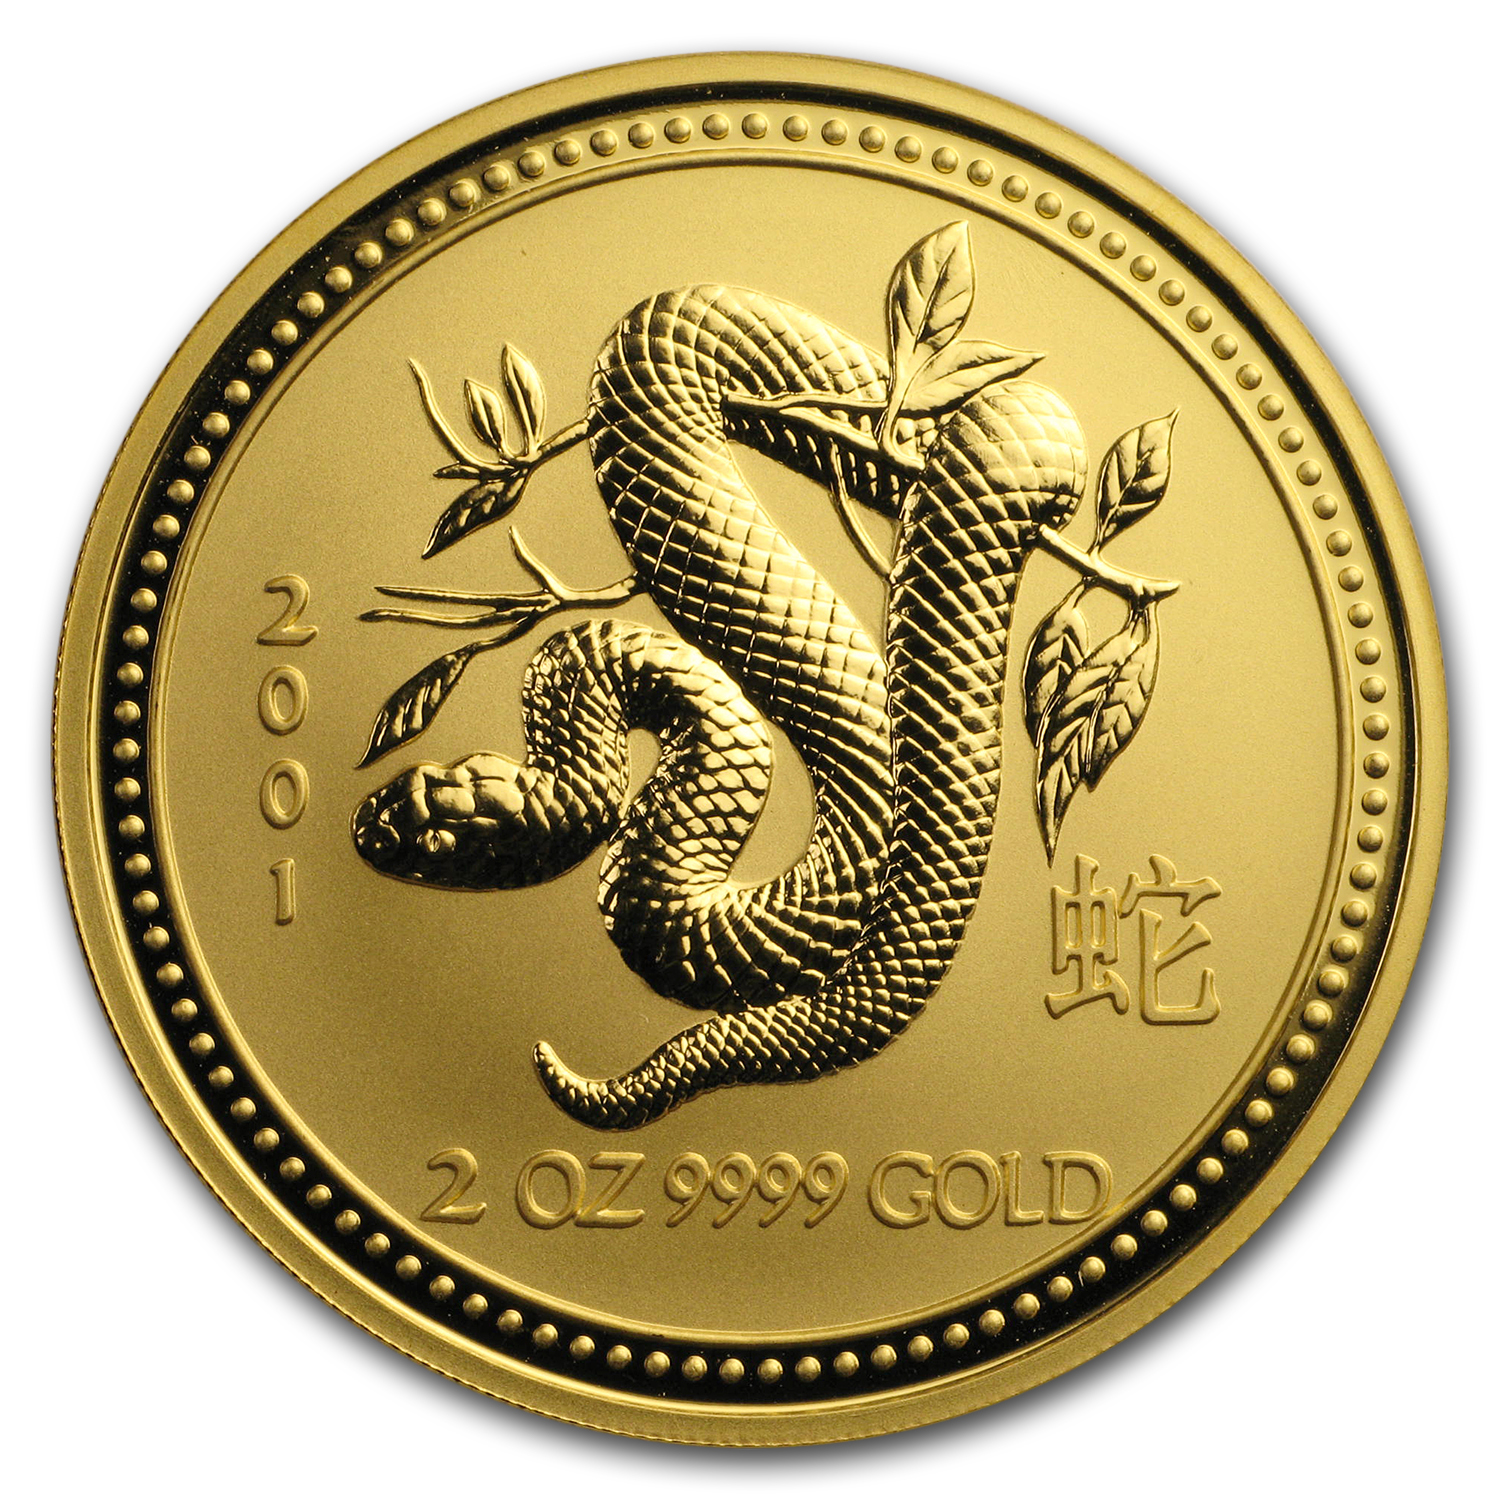 2001 2 oz Gold Lunar Year of the Snake BU (Series I)